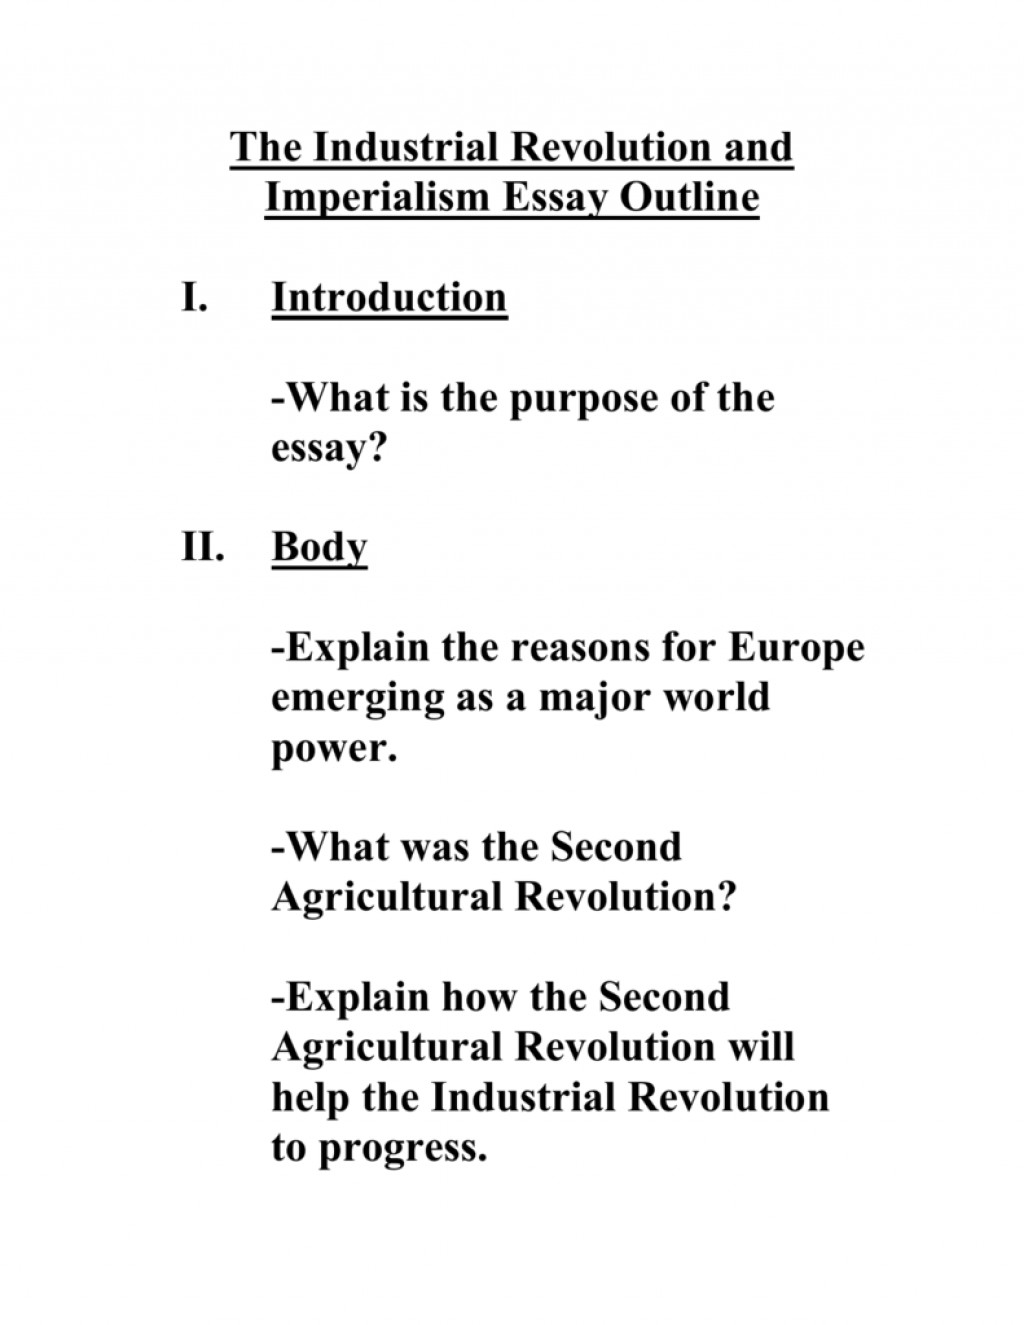 006 Imperialism Essay 008020297 1 Awful Hook Topics Thesis Statement Large